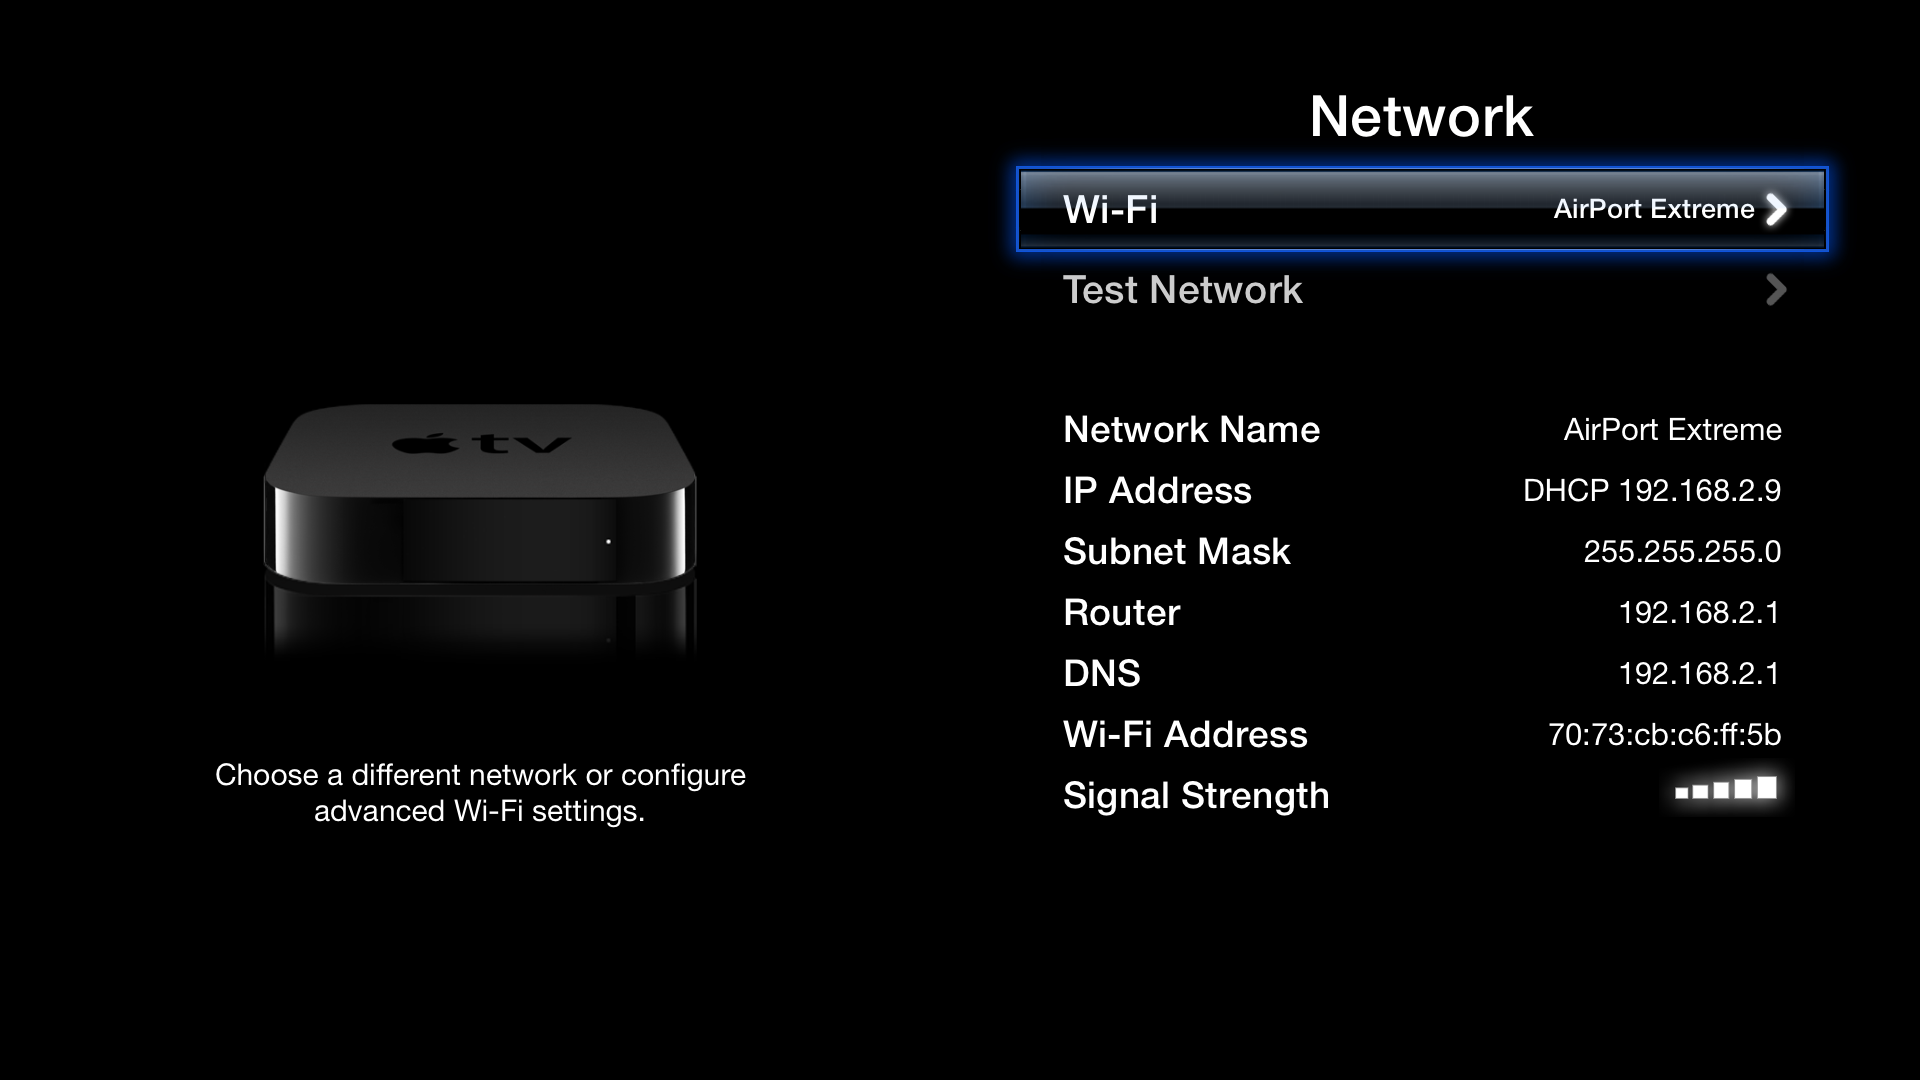 Wired apple tv network wire center apple tv 2nd and 3rd generation troubleshooting wi fi networks rh administrivia com apple tv airplay wired network apple tv loses wired network connection asfbconference2016 Images